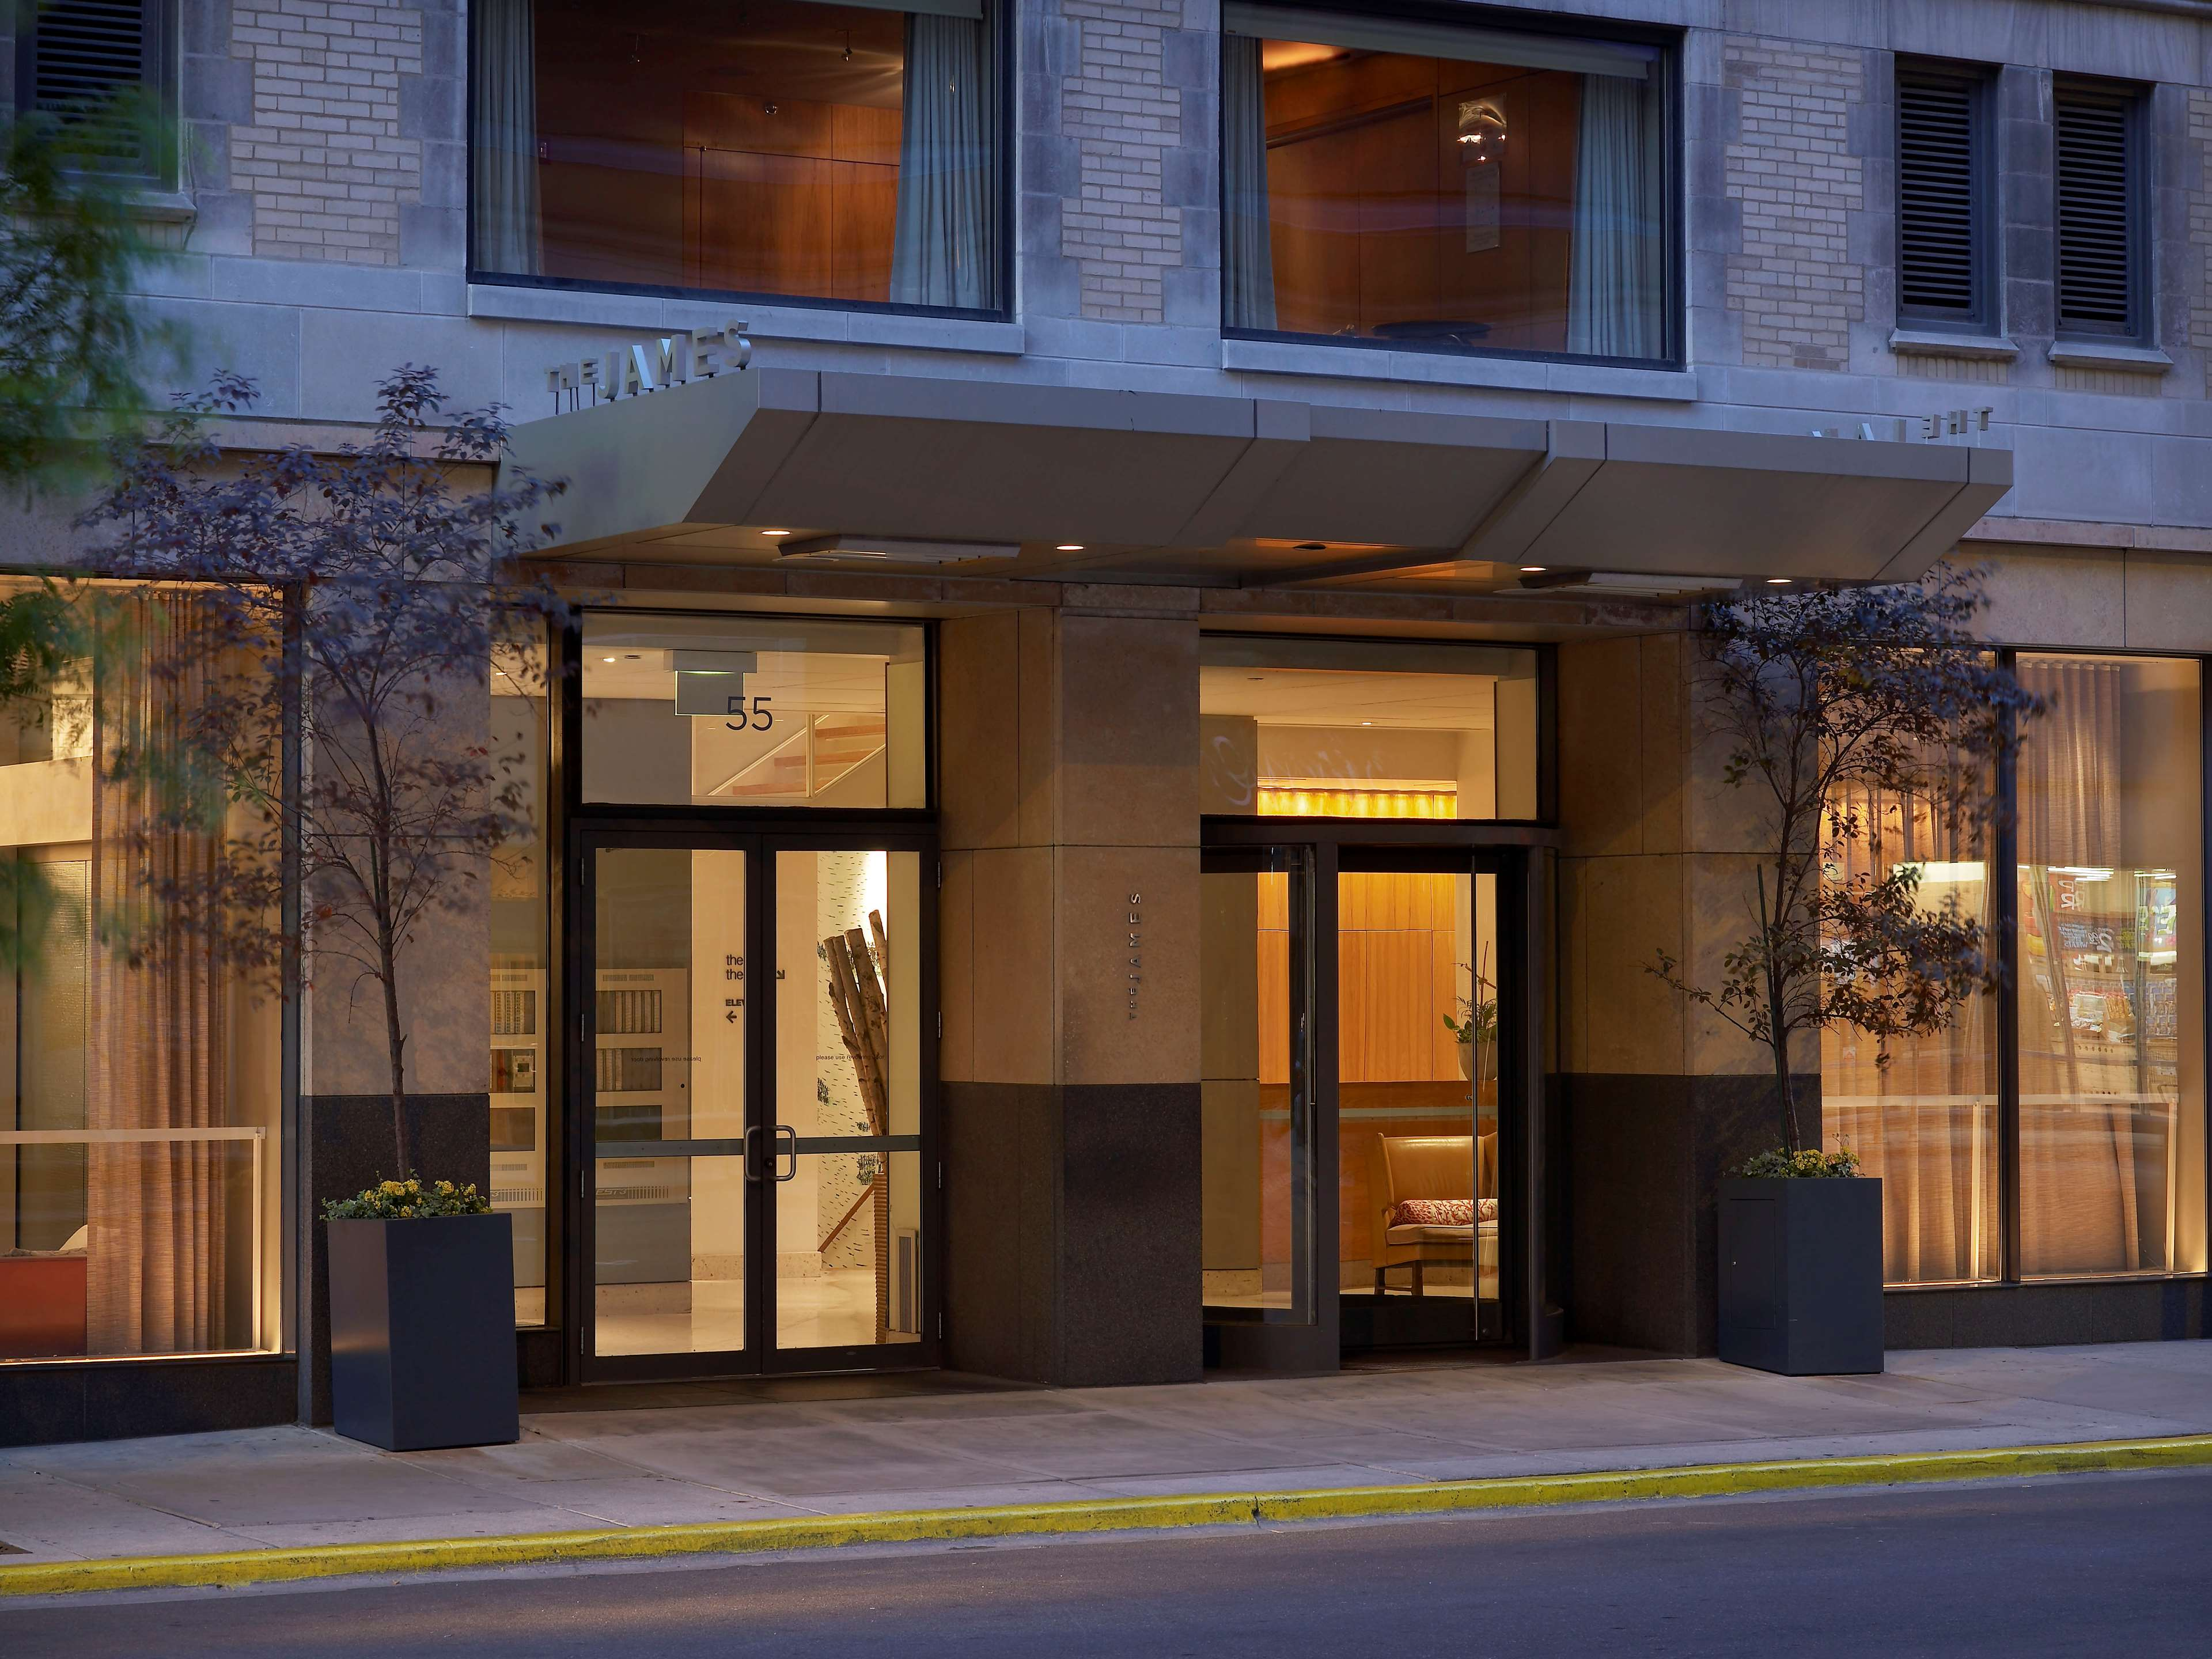 The James Chicago - Magnificent Mile image 15